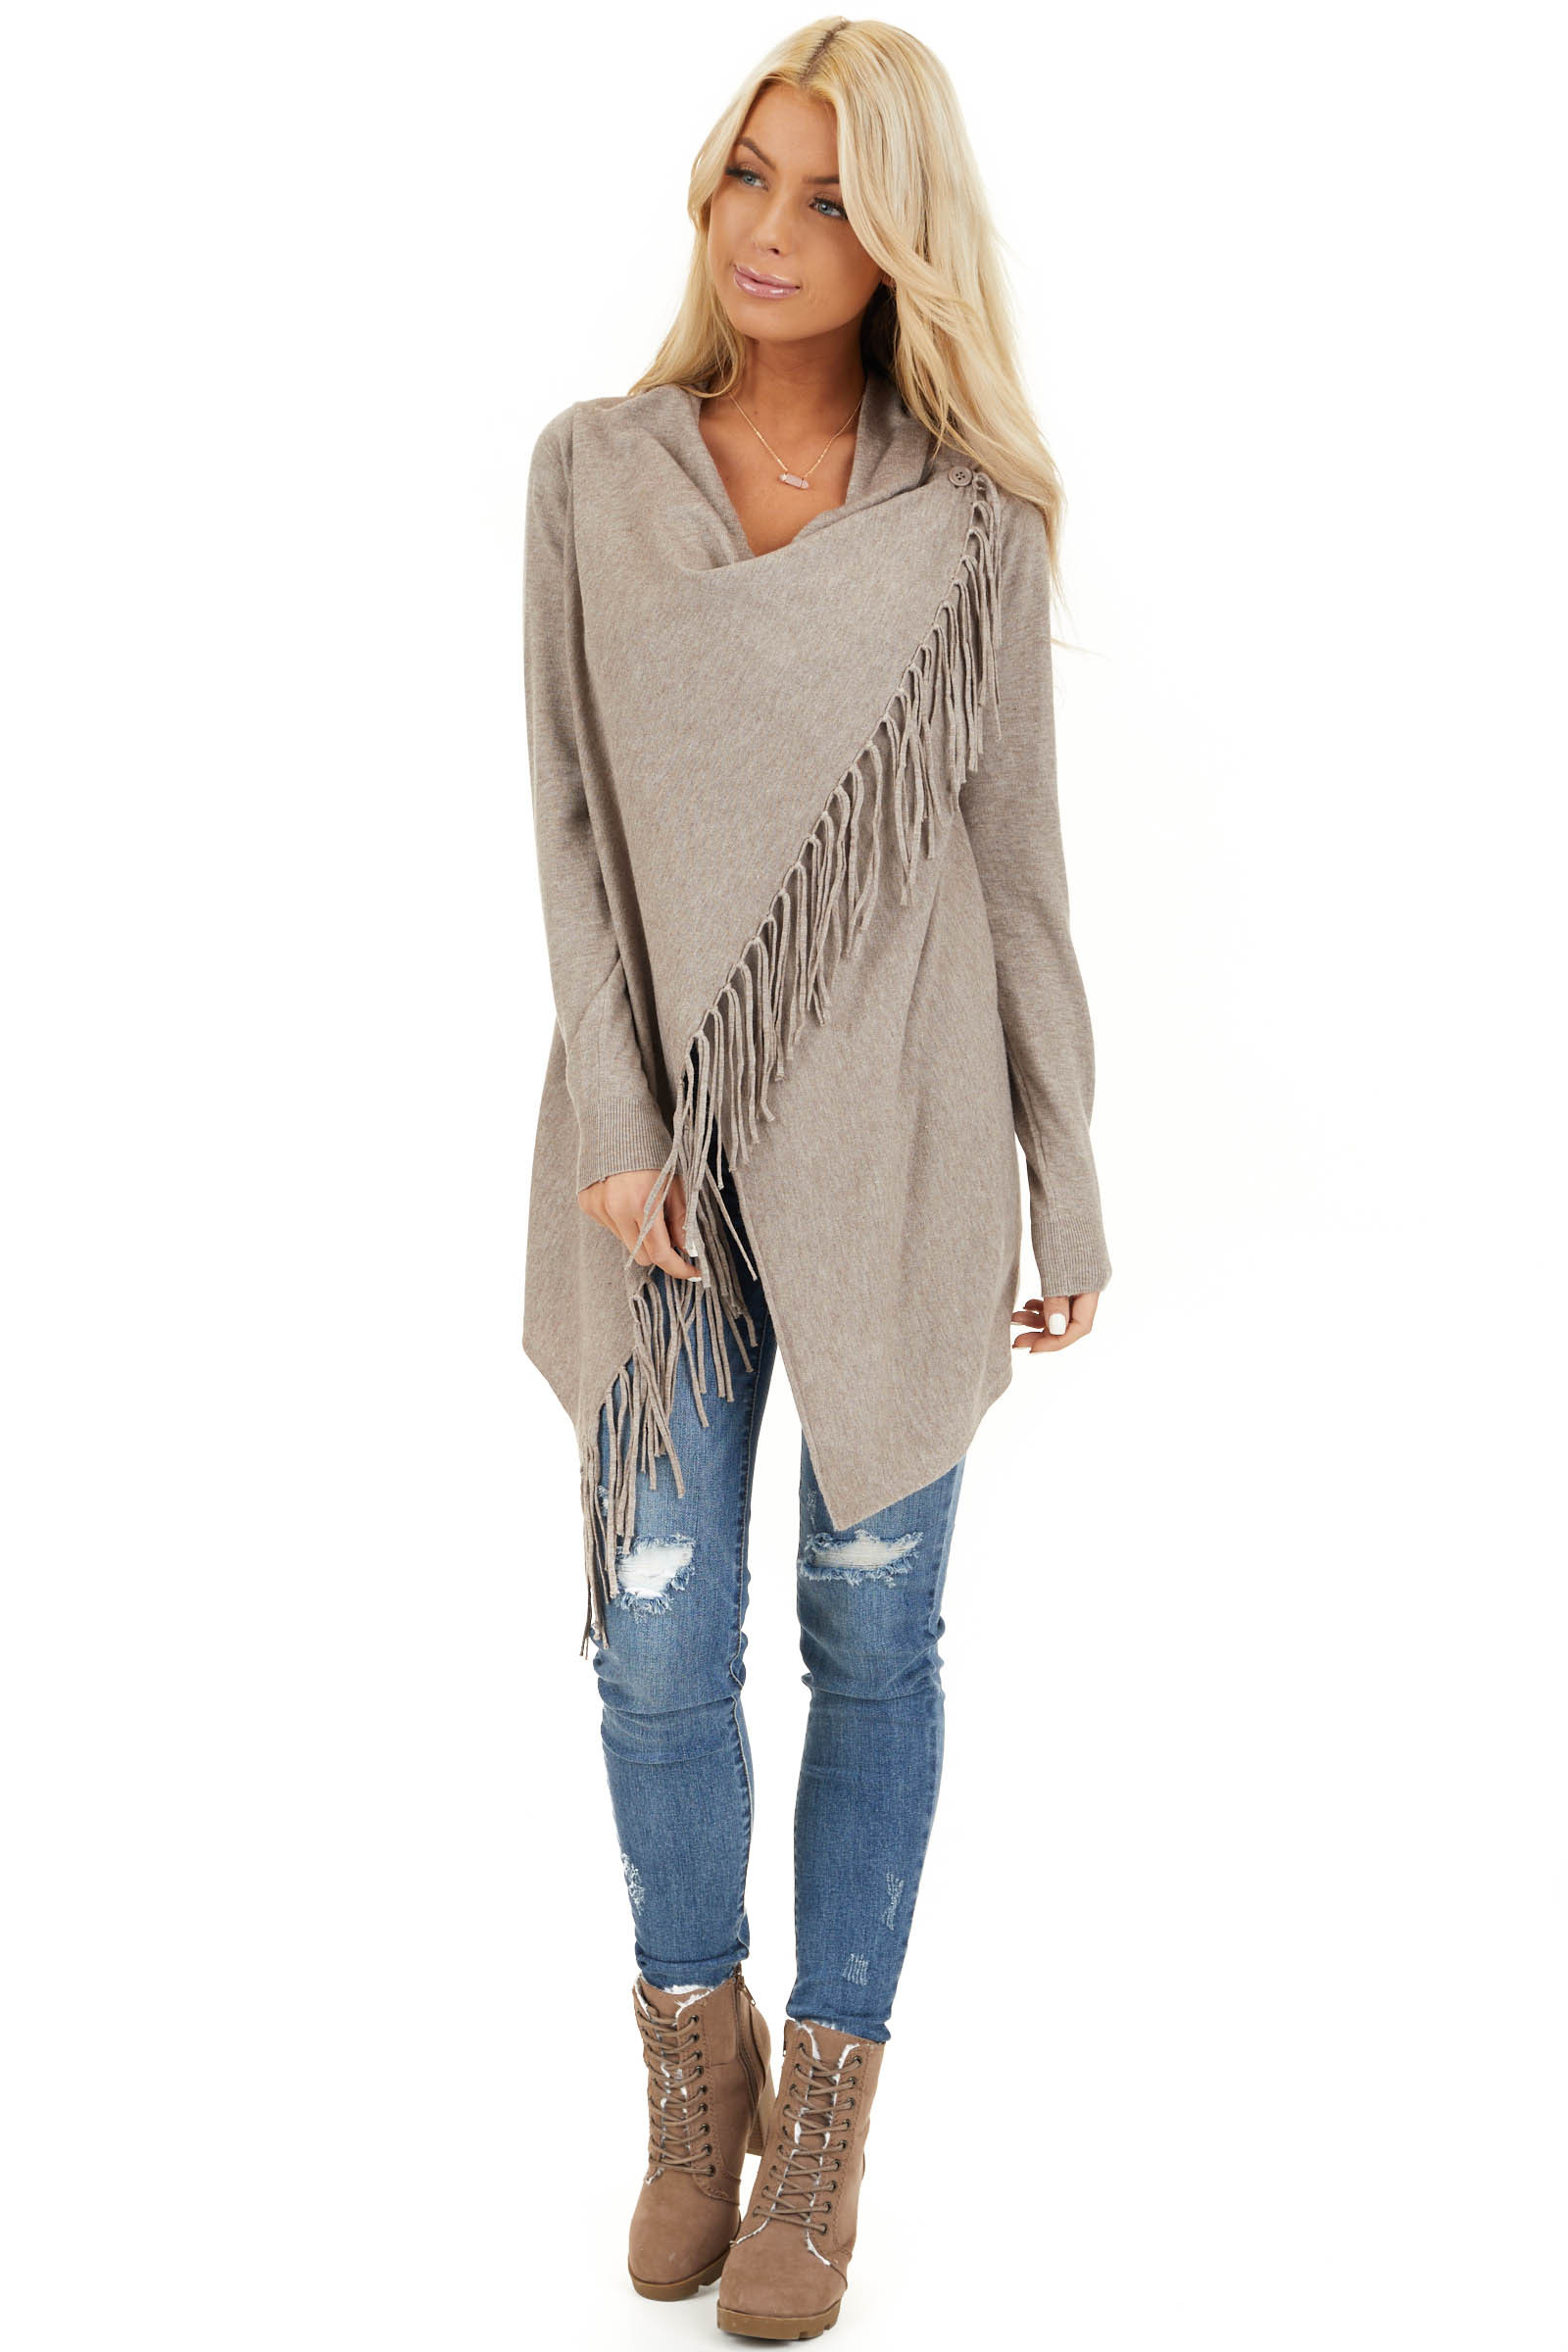 Oatmeal Cowl Neck Knit Poncho with Tassel Details front full body